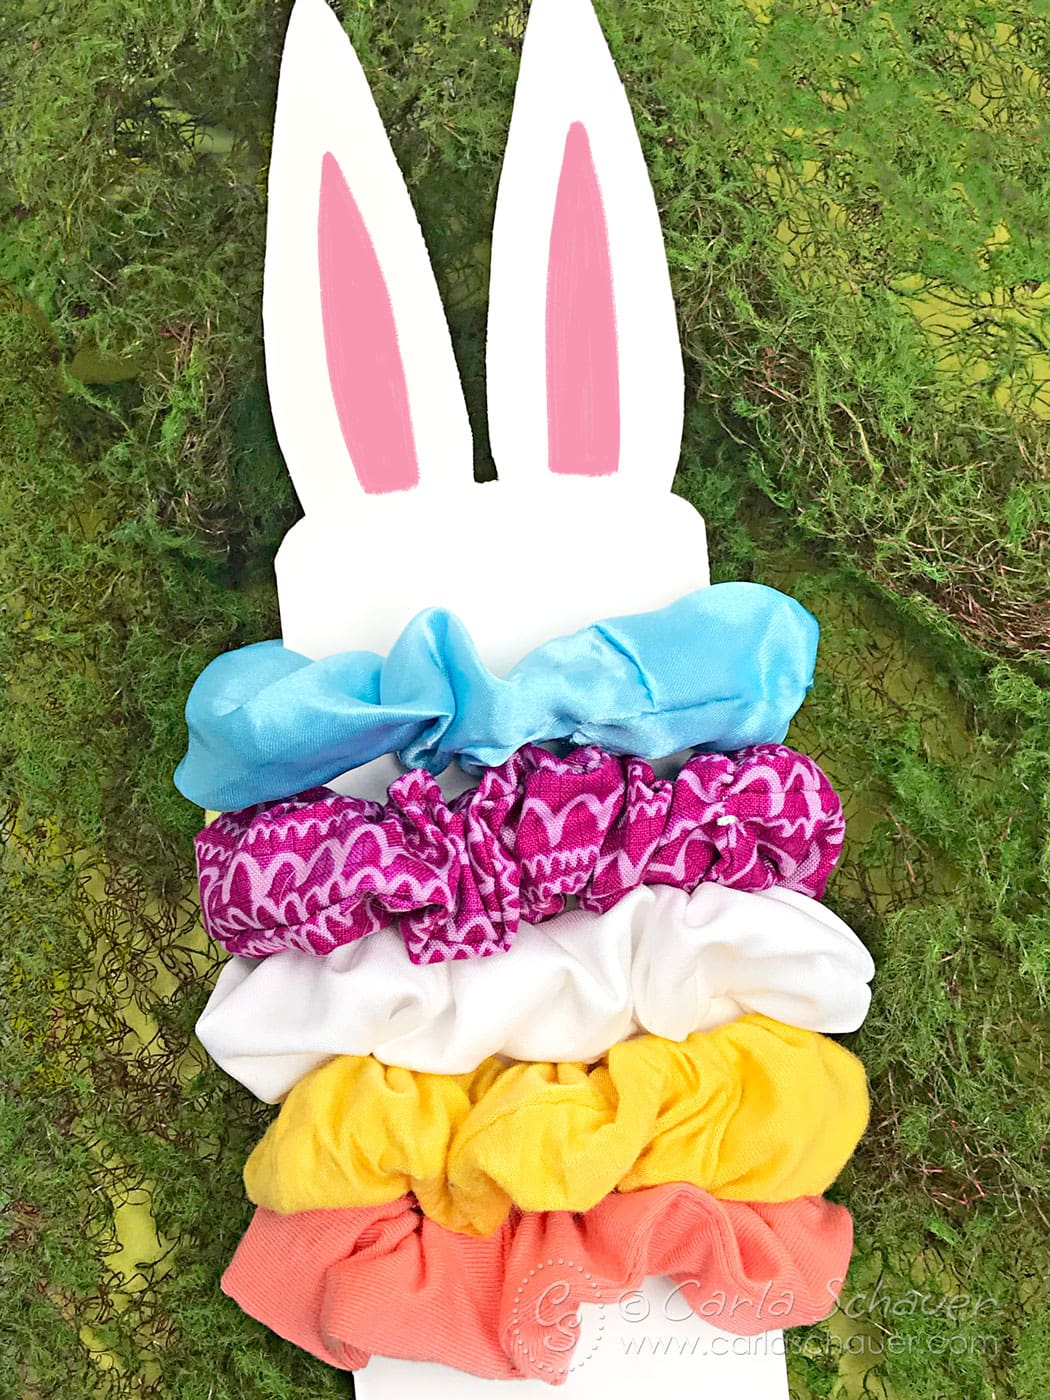 Bunny-shaped card with 5 colorful handmade scrunchies.